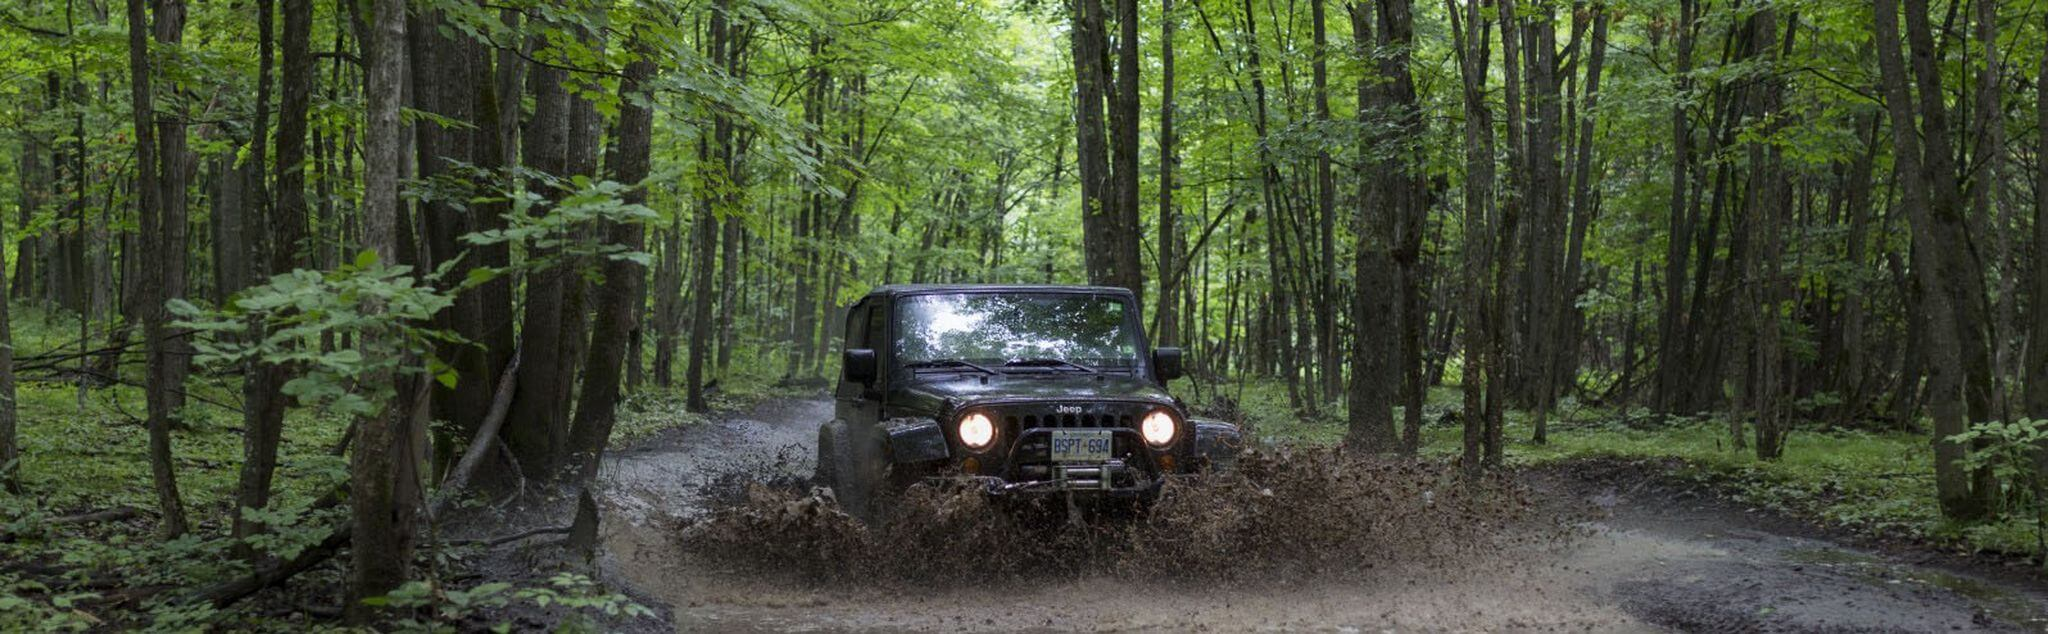 4x4 Tours in Gloucestershire